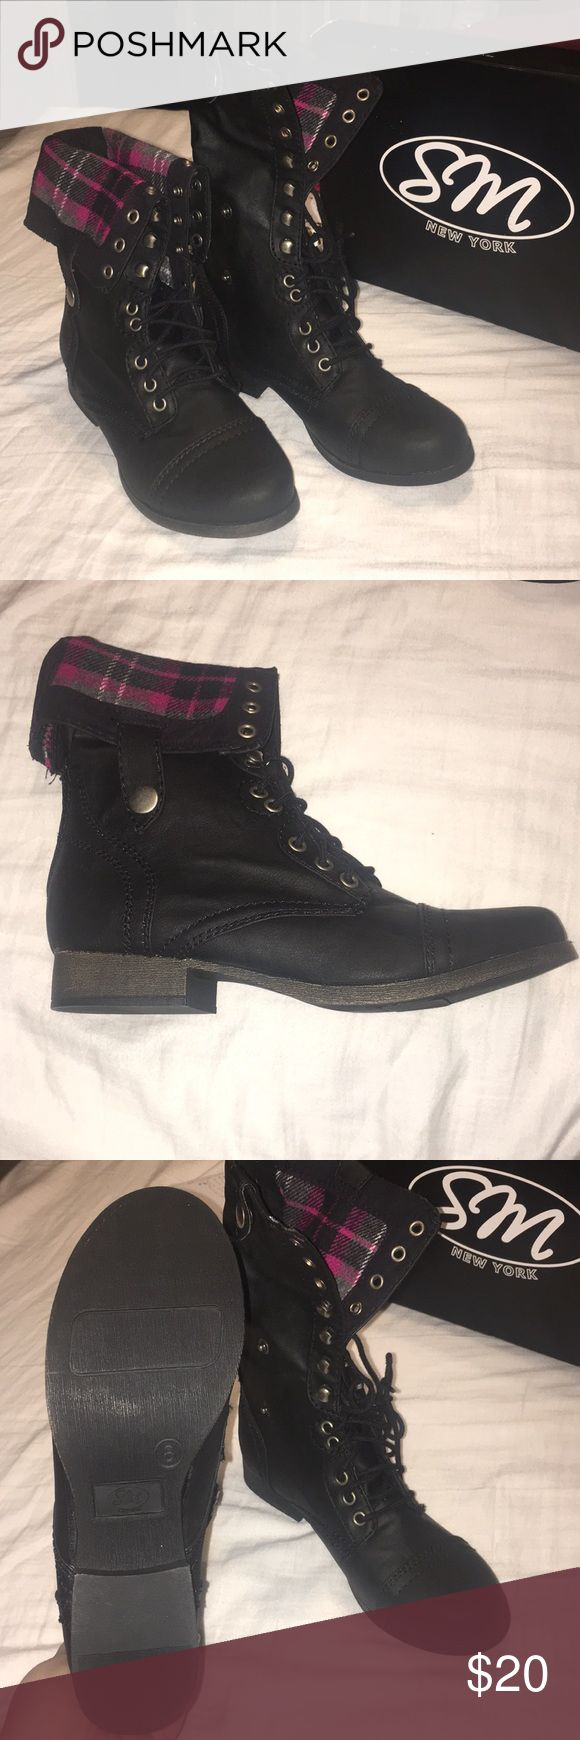 SM New York Corey Boots BRAND NEW boots! Size 8! I can send more pictures if needed! You can wear folded or all the way up! Purchased from Sears but never worn. SM New York Shoes Combat & Moto Boots